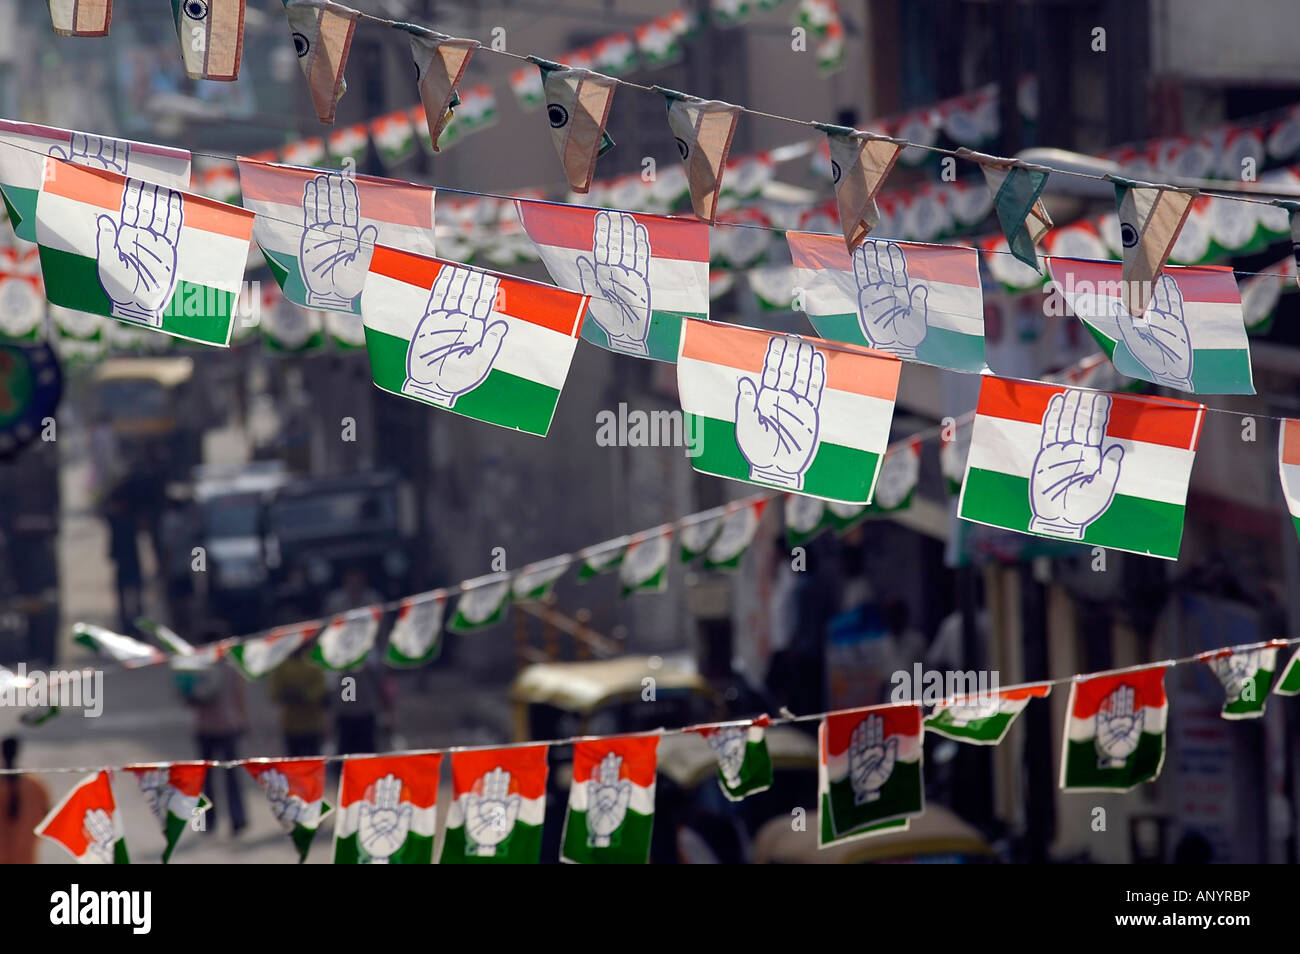 Hundreds Of Flags Of The Indian National Congress Party